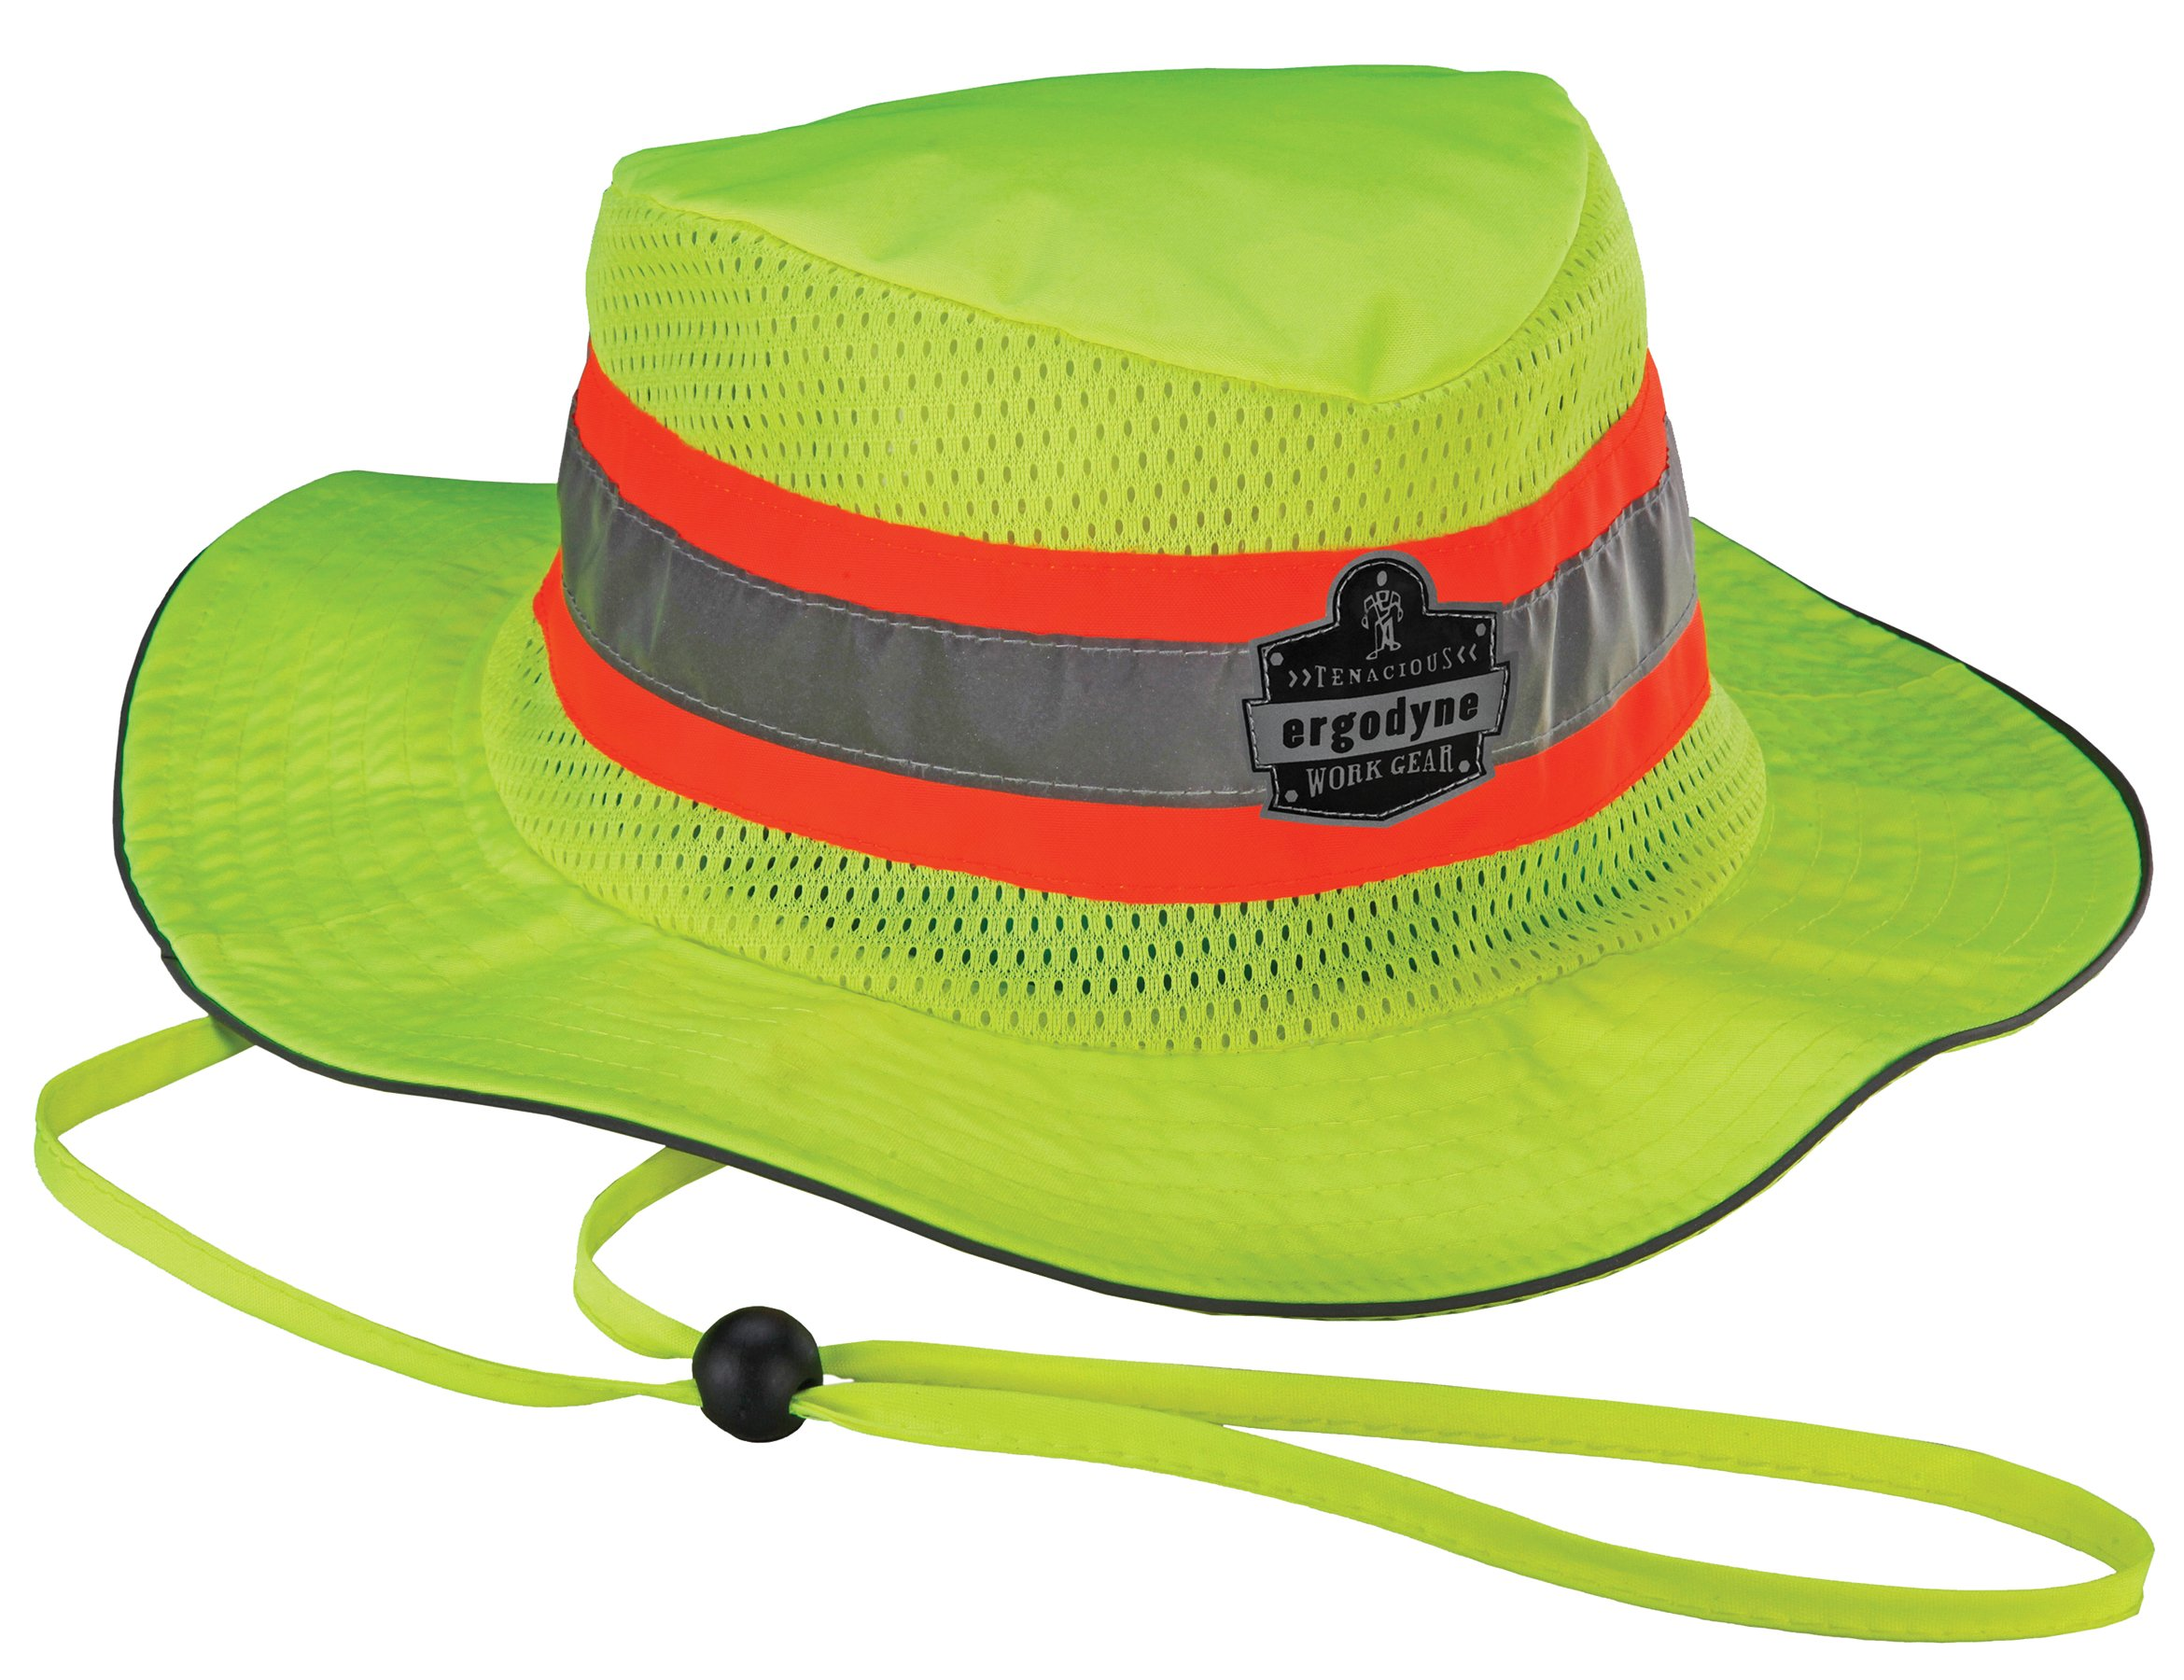 Cooling Ranger Hat, Lined with Evaporative Soft Microfiber Material for Cooling Relief, Breathable, Ergodyne Chill Its 8935MF by Ergodyne